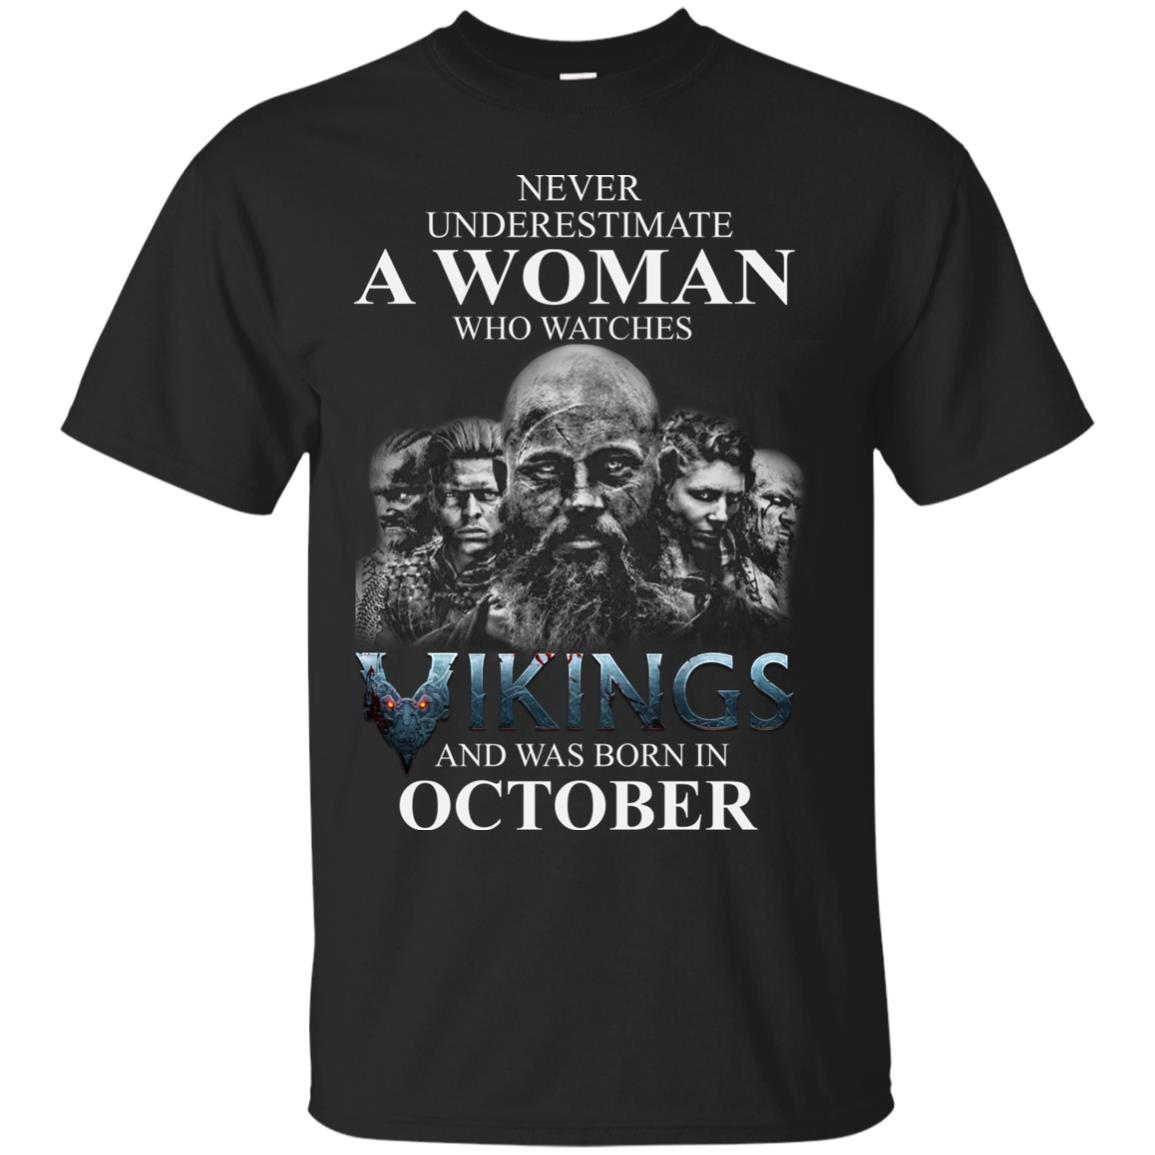 image 1243 - Never Underestimate A woman who watches Vikings and was born in October shirt